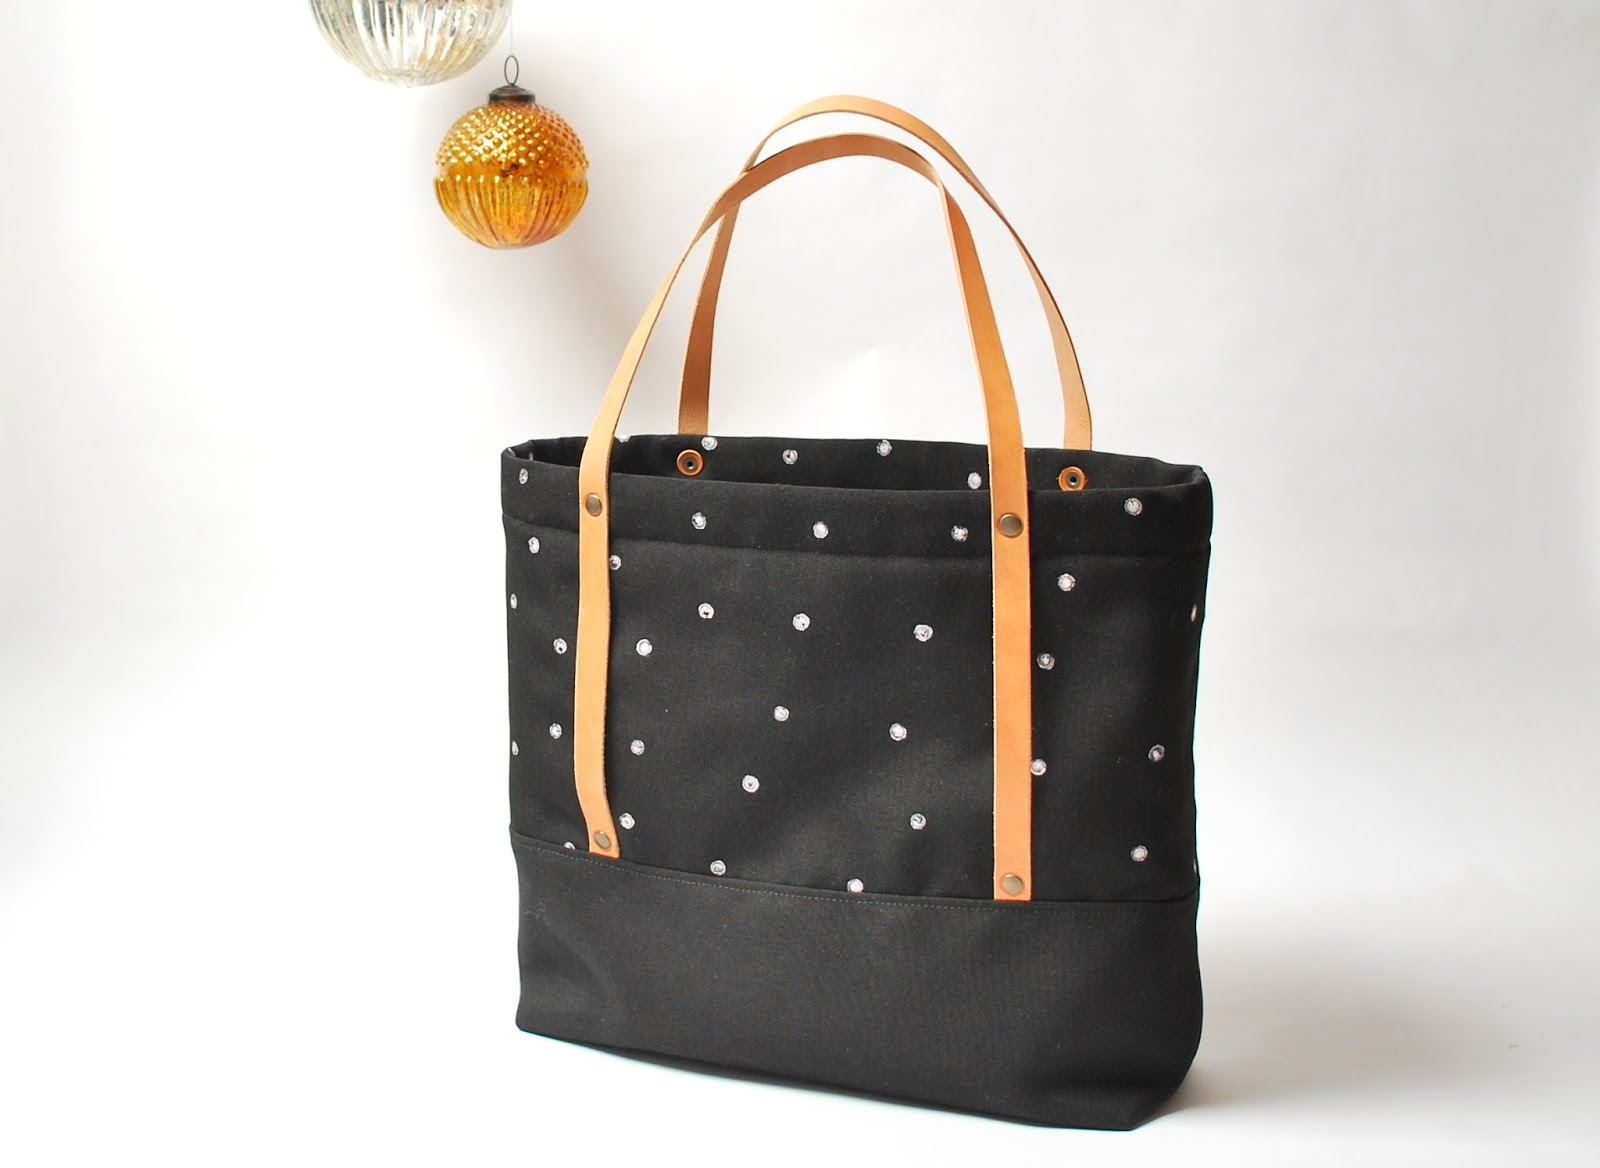 a black totebag with polkadots and leather straps